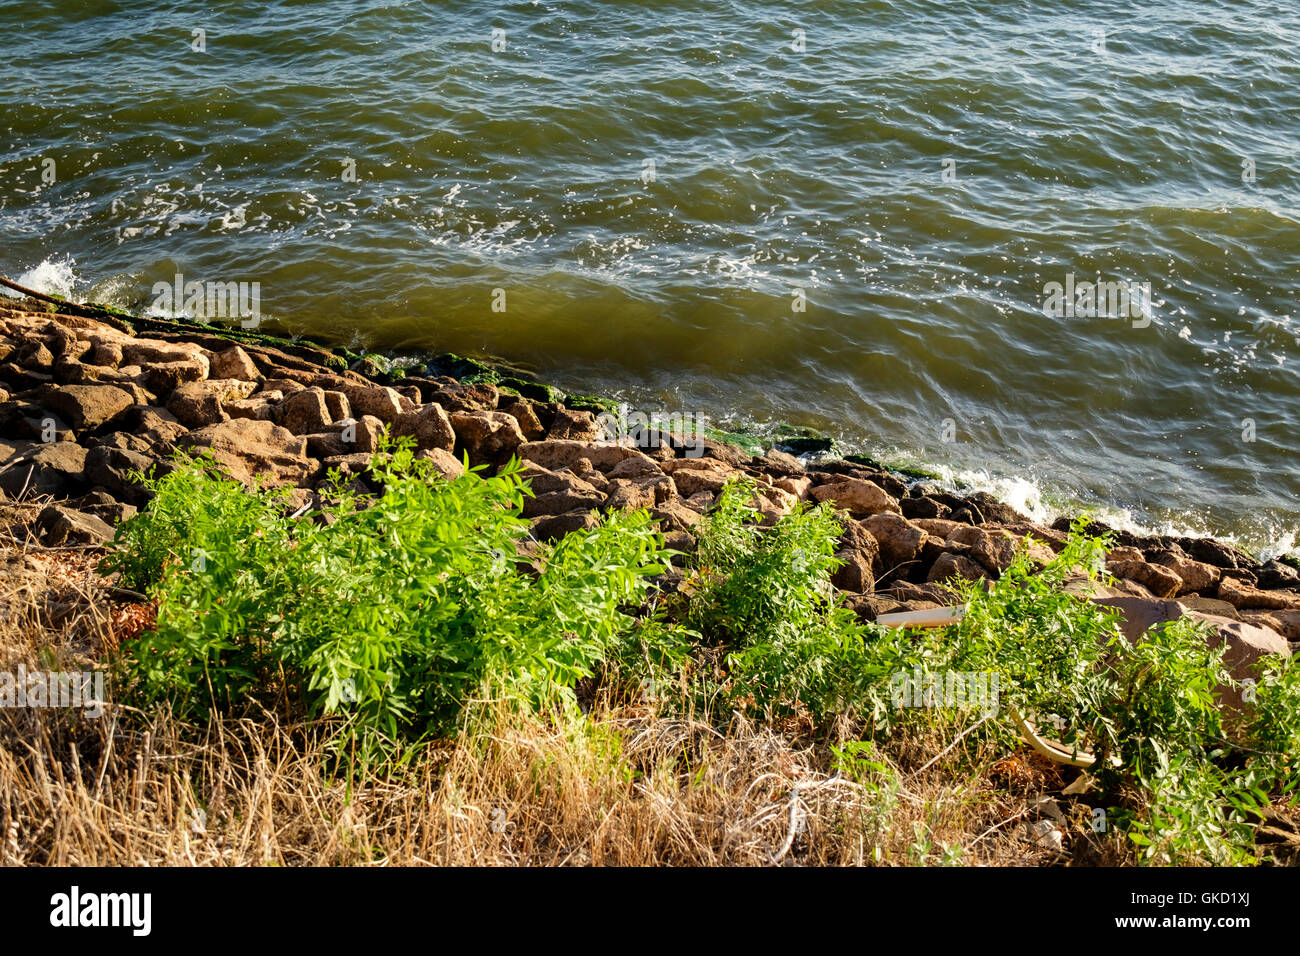 Rip-rap, or shot rock for erosion control lines the banks of Hefner lake in Oklahoma City, Oklahoma, USA. - Stock Image